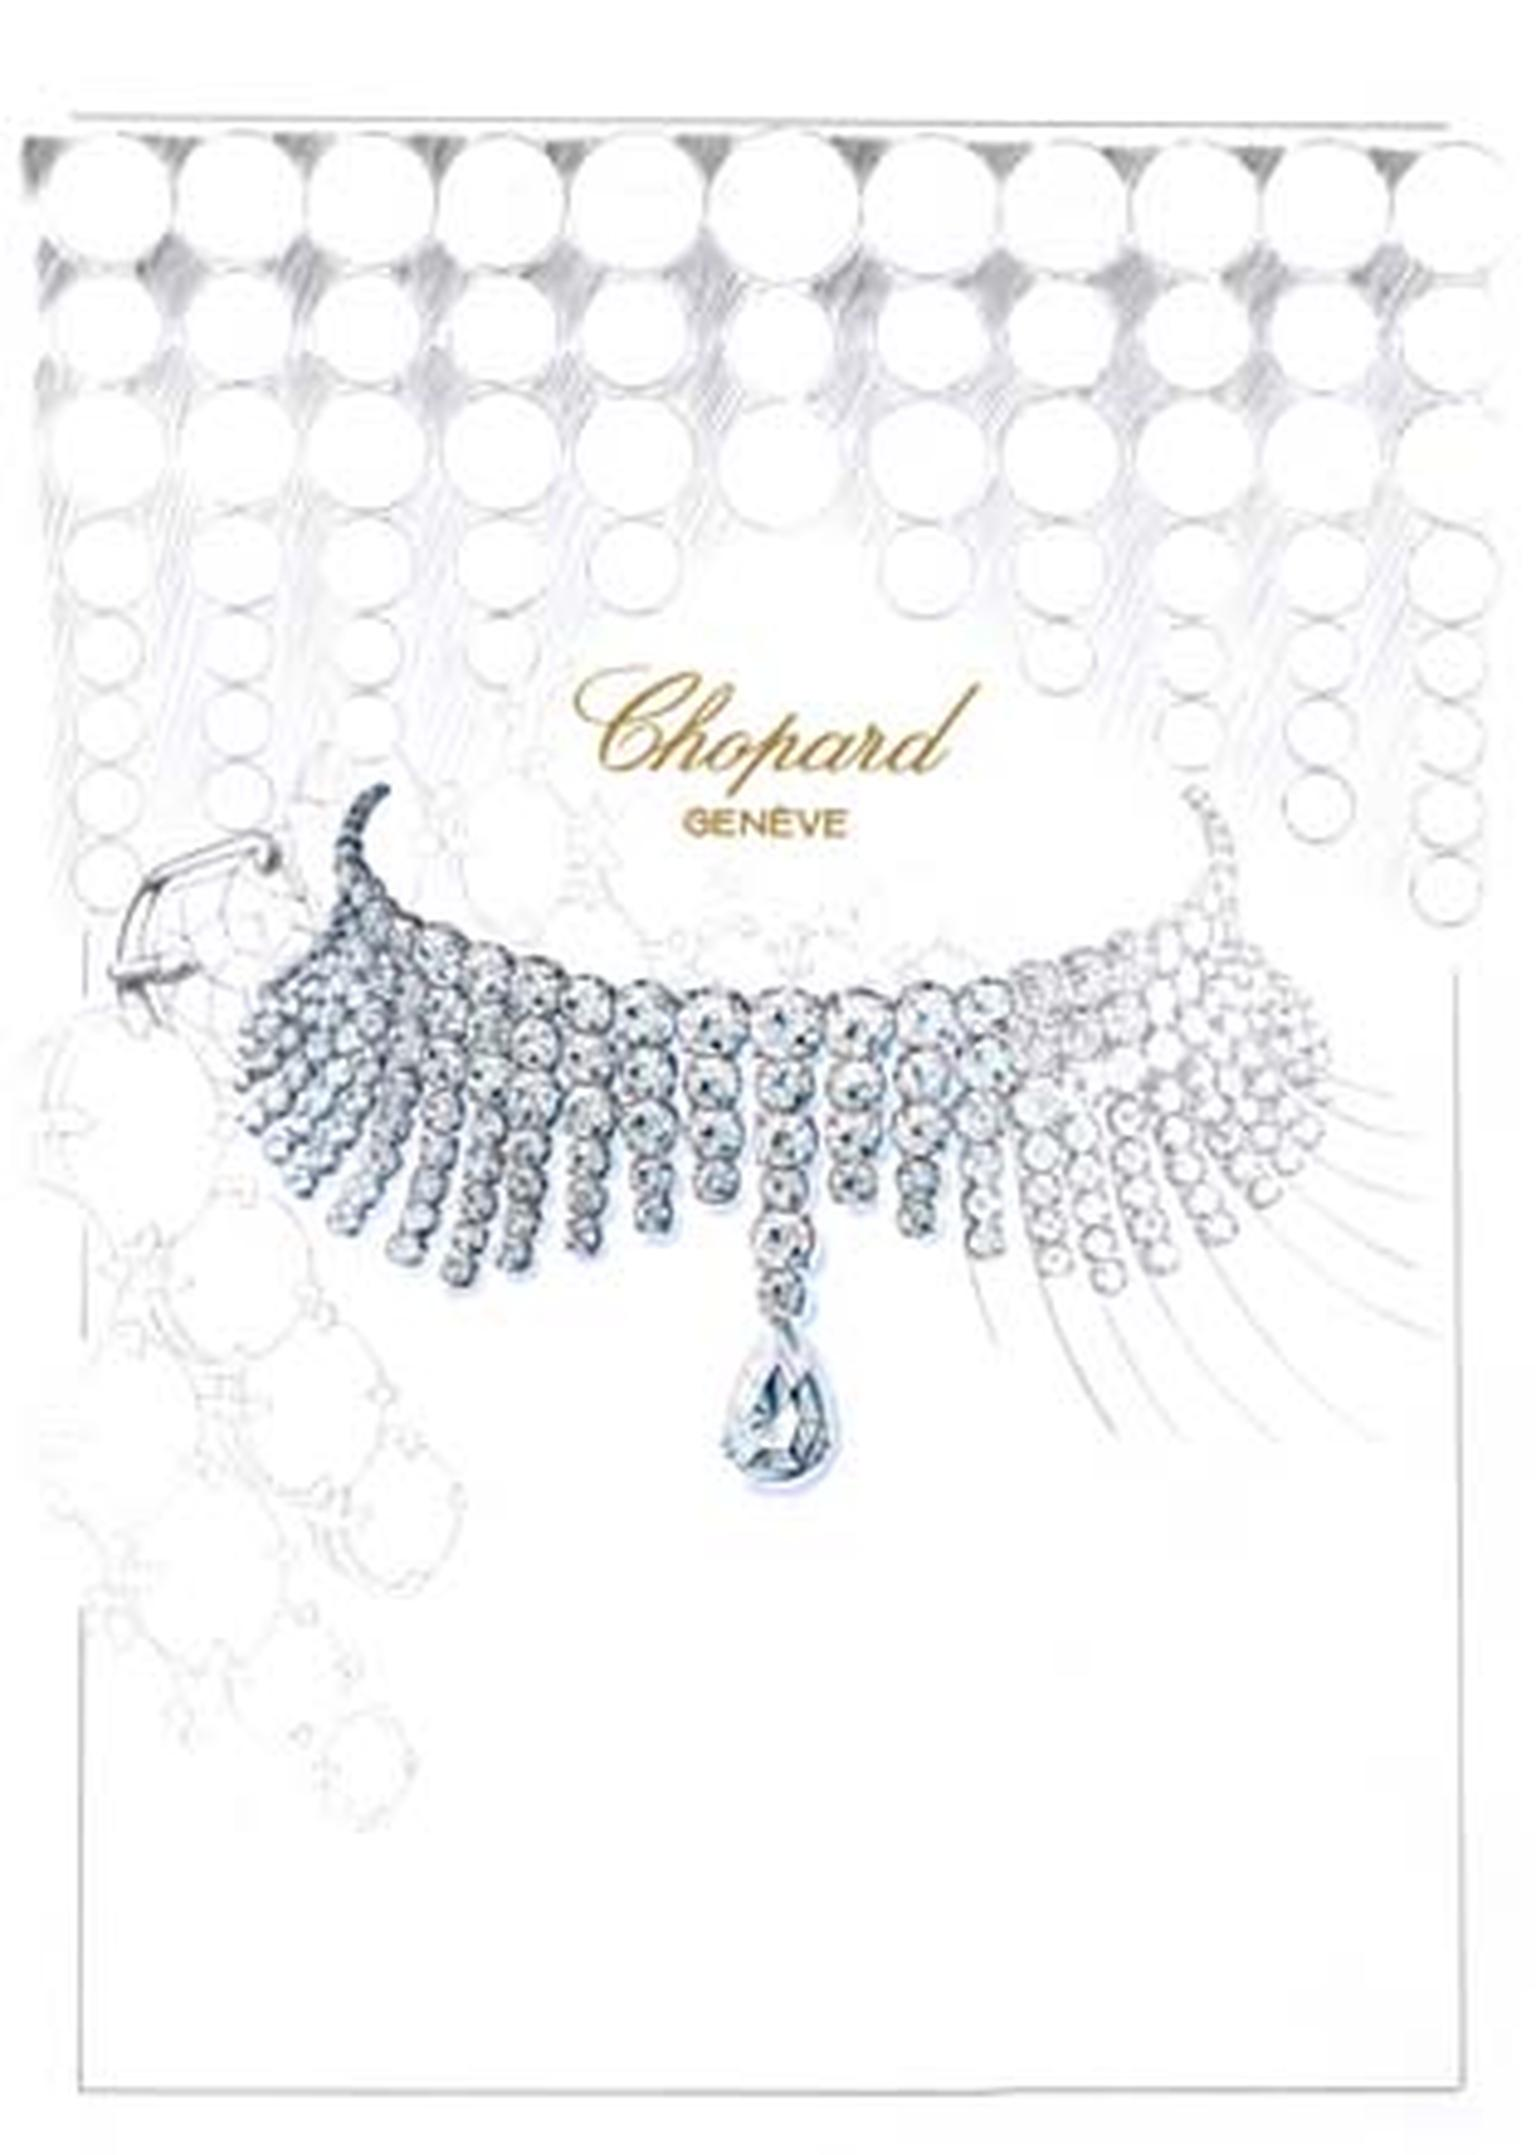 810391-1001 Sketch Diamond Necklace from the Red Carpet Collection 2013Chopard.jpg